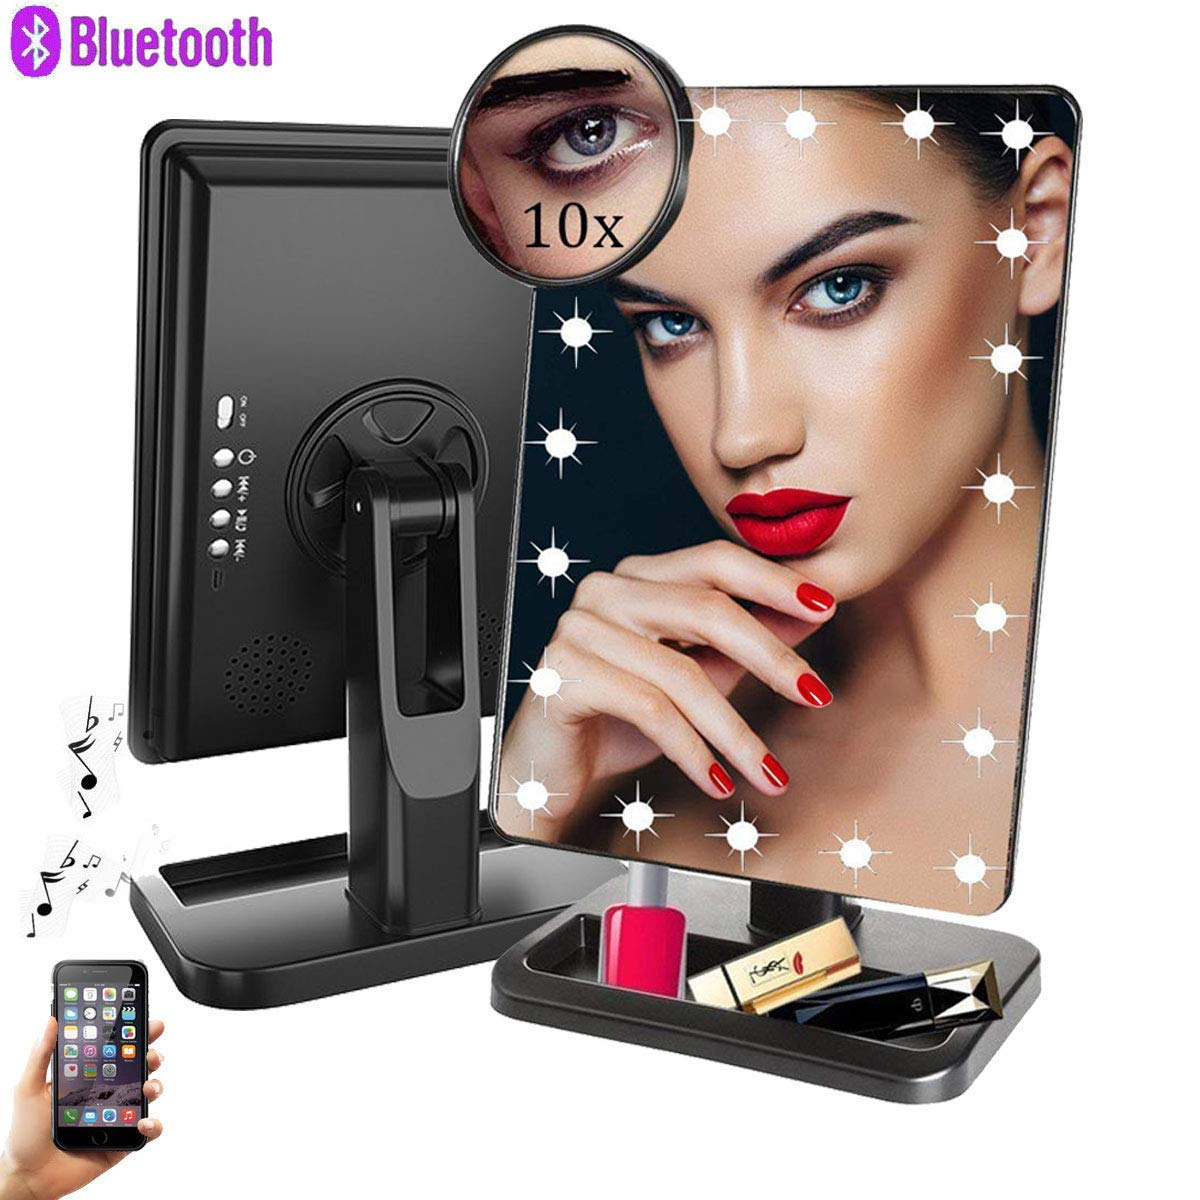 Makeup Mirror with Bluetooth,Removable 10x Magnification,Rechargeable Touch Dimmable Vanity Mirror with 20 Energy-Saving LED Lights,180 Rotation,Lighted Up Cosmetic Mirror for Home Tabletop Travel